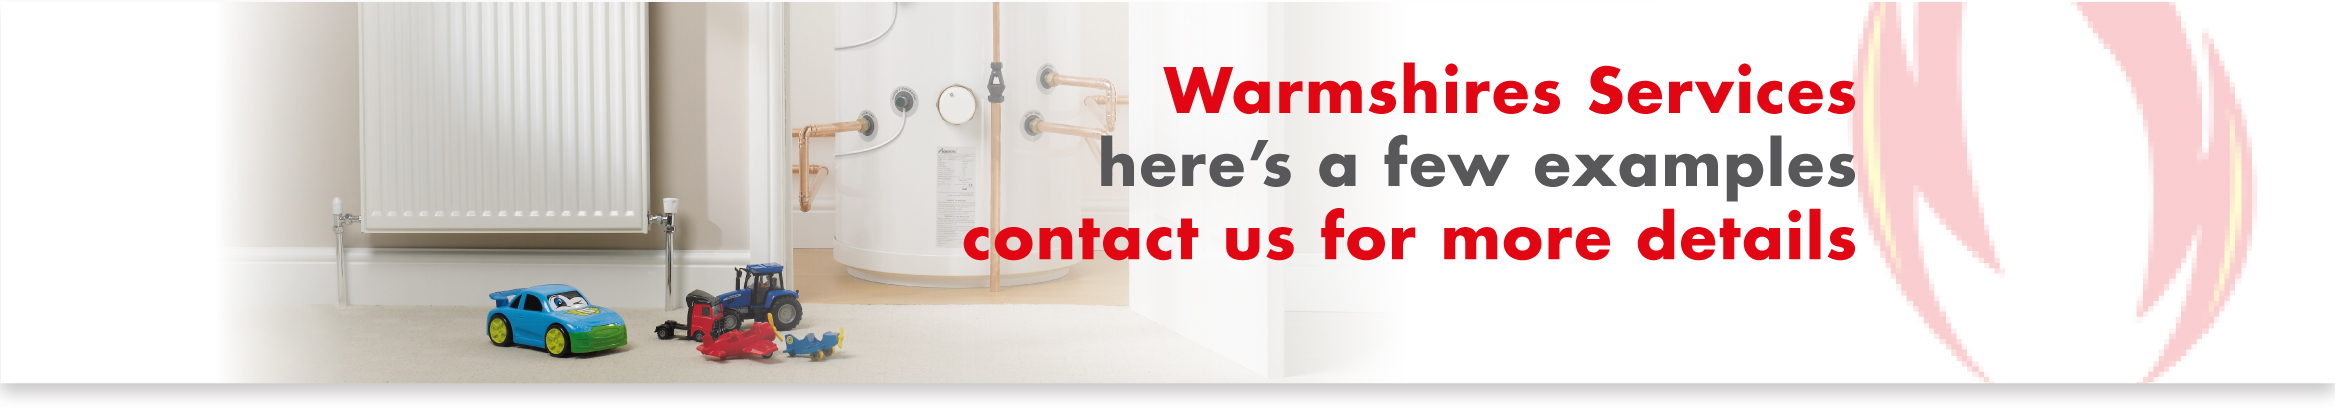 Services Warmshires Ltd Nottingham